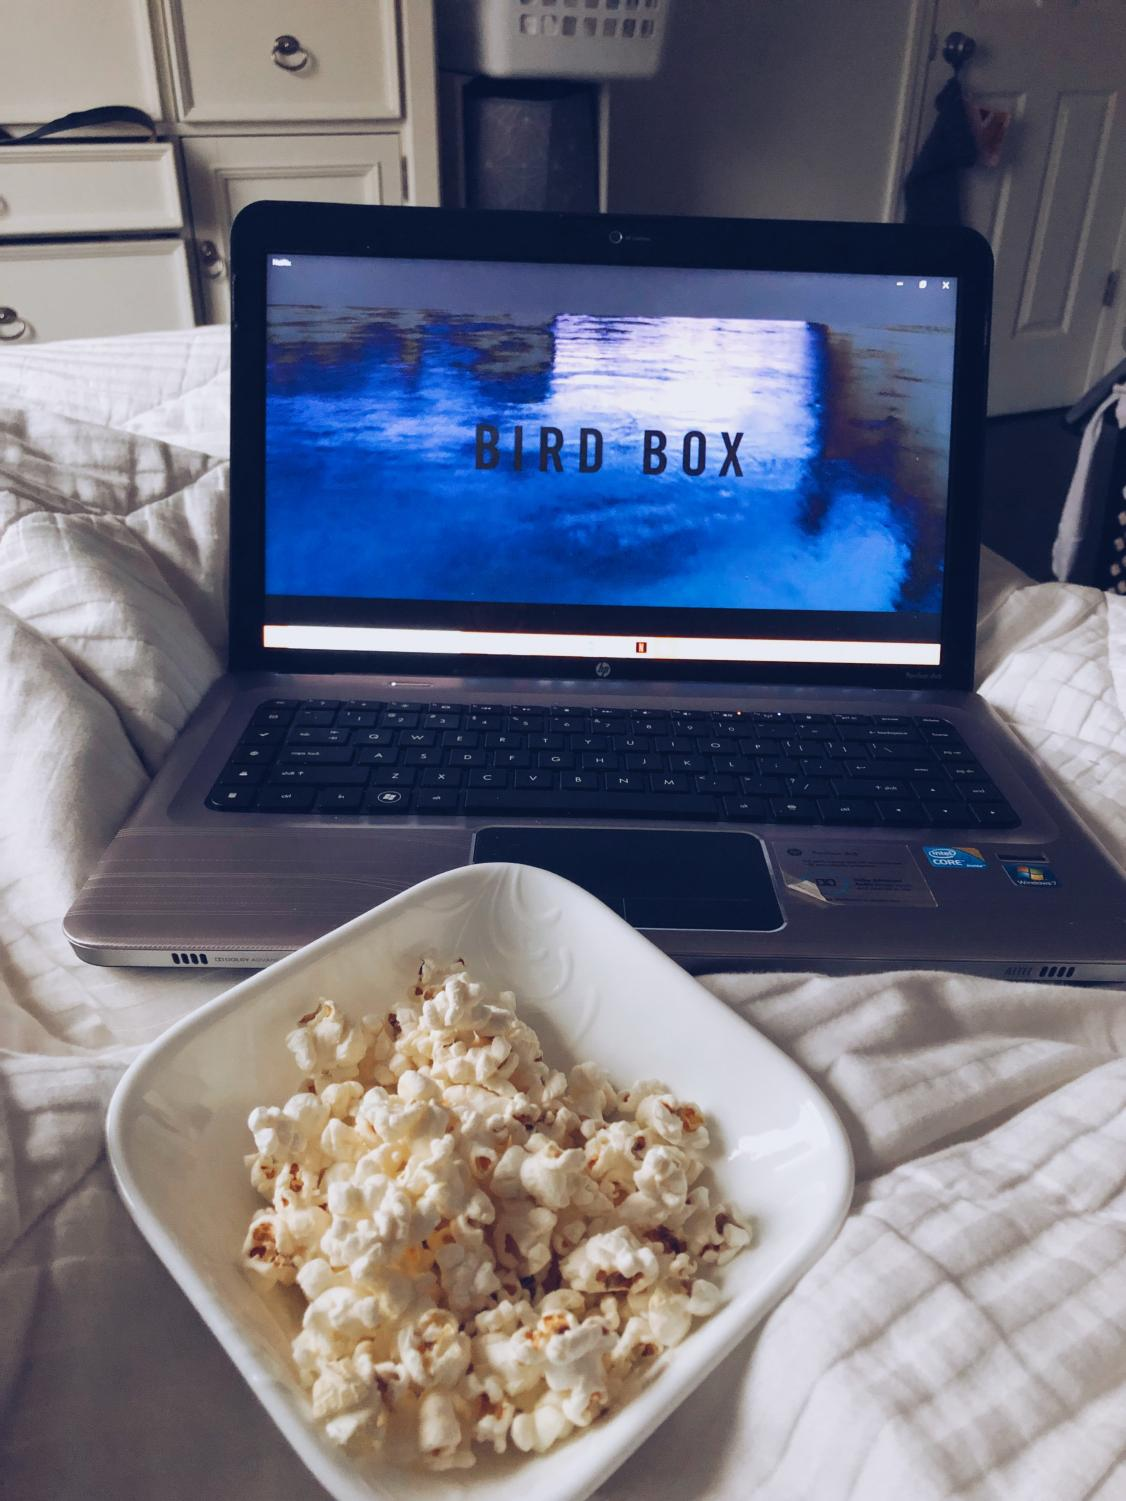 Popcorn and movies are the best way to spend a lazy weekend!